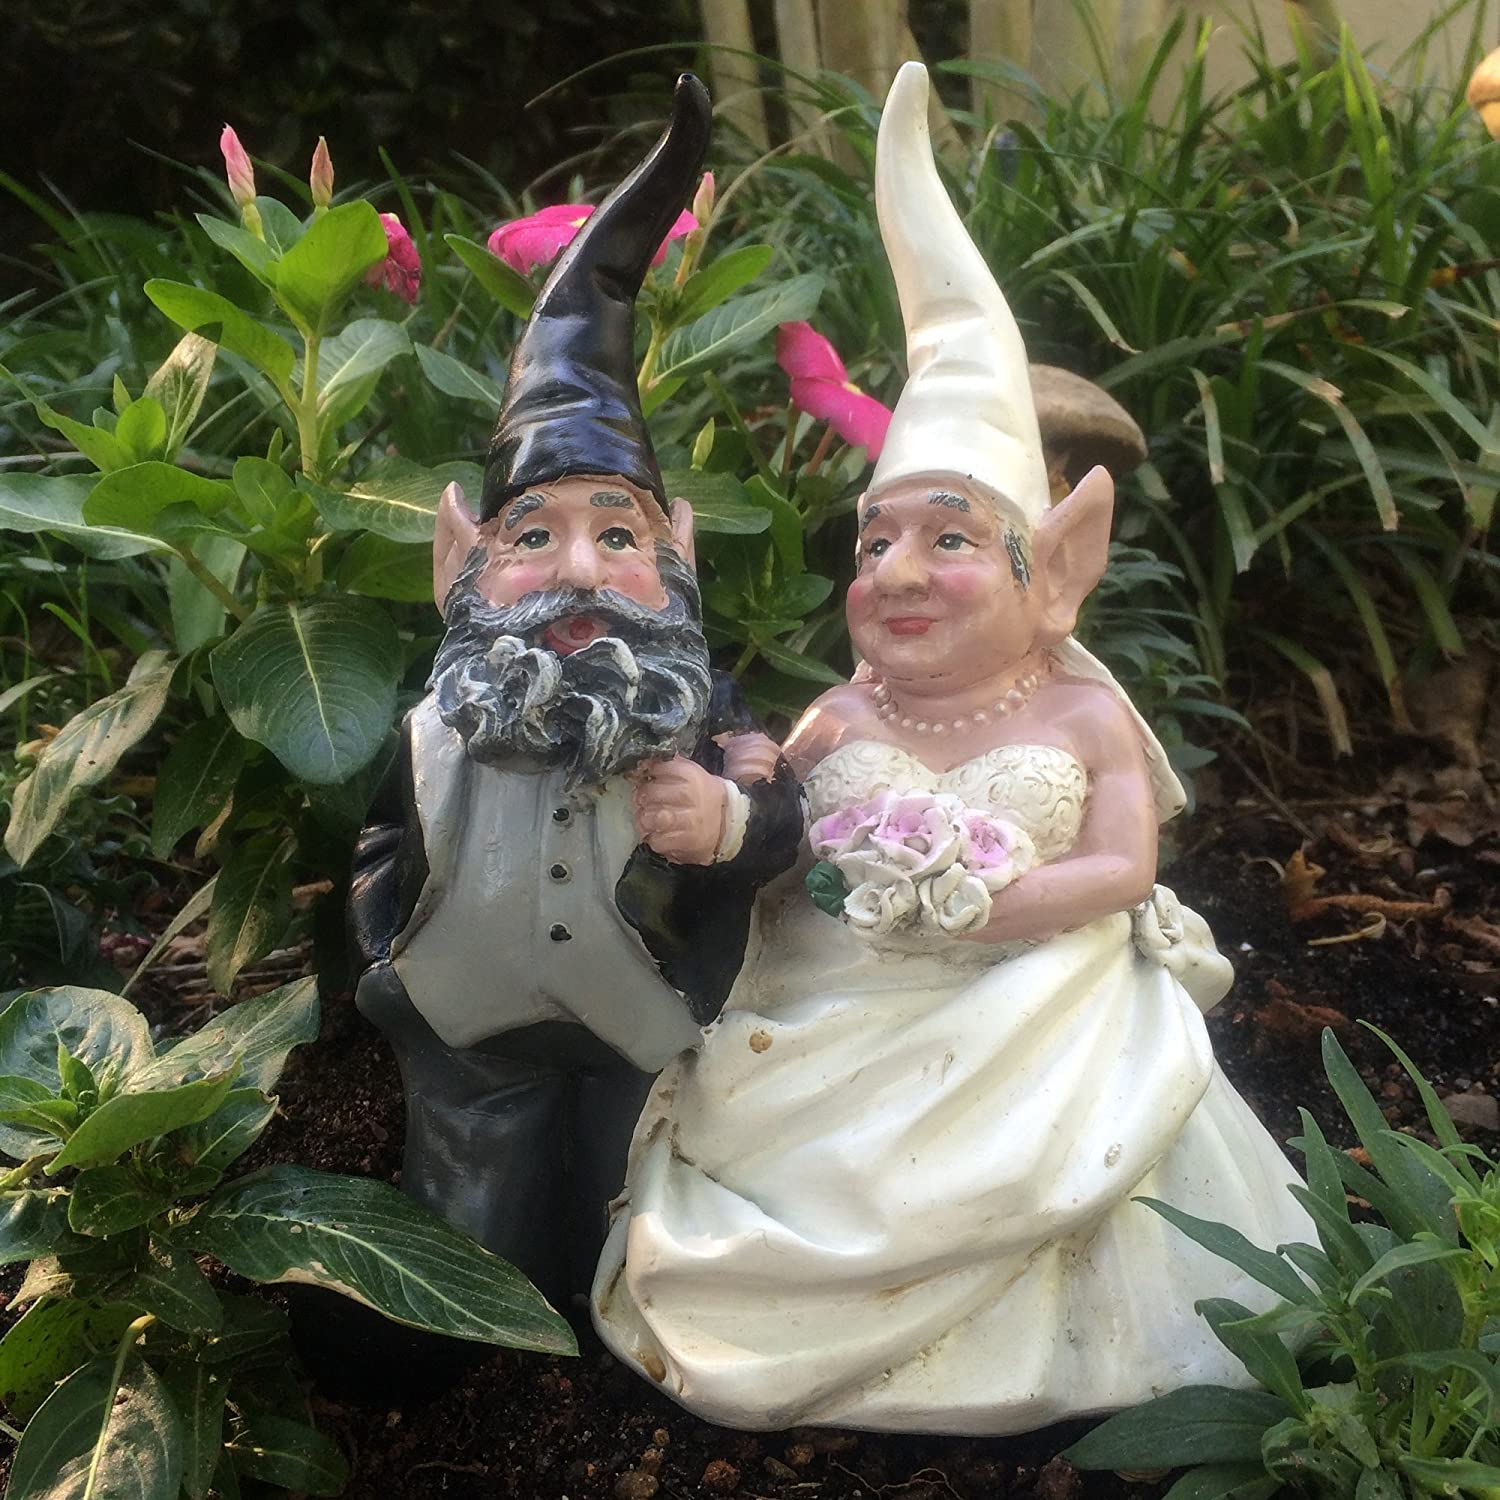 15 Wedding Bride and Groom Love Couple Gnome Home and Garden Statue Figurine